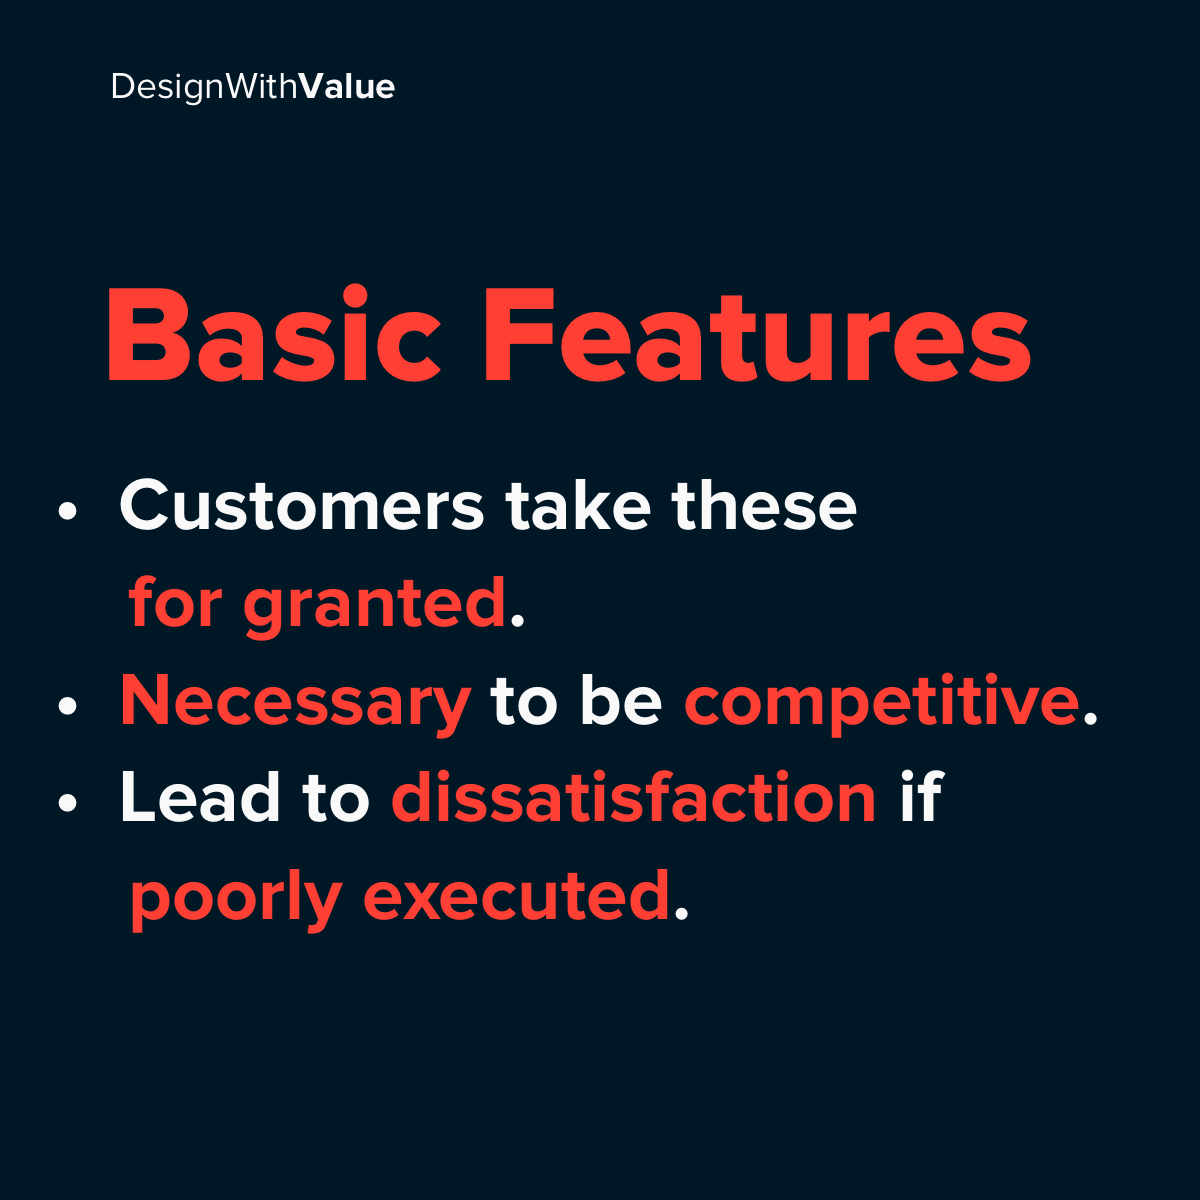 Basic features: Are taken for granted, are necessary to be competitive, lead to dissatisfaction if poorly executed.